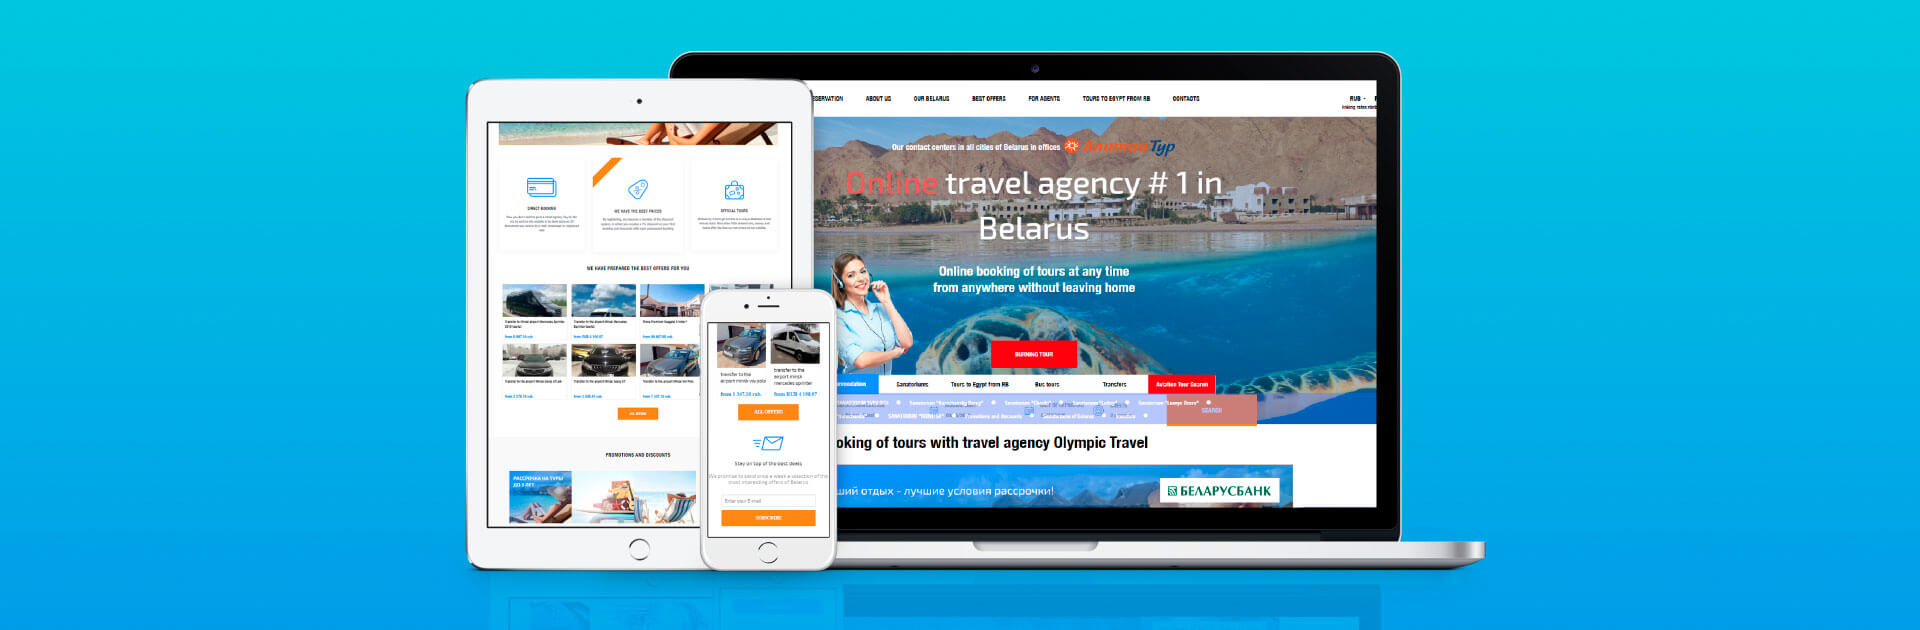 Creation and promotion of a website for a tourism organization